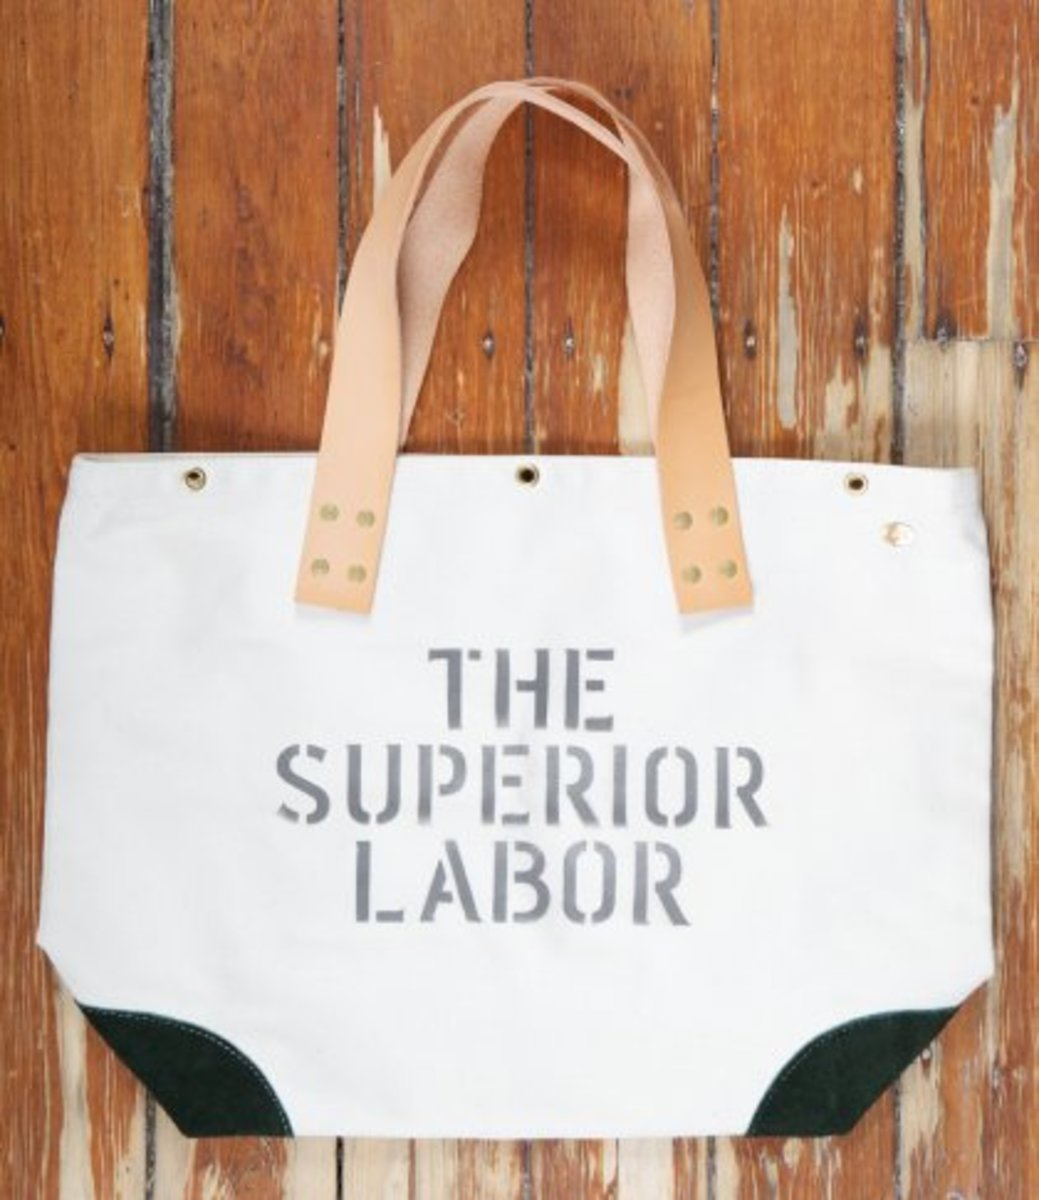 super-labor-market-bag-07